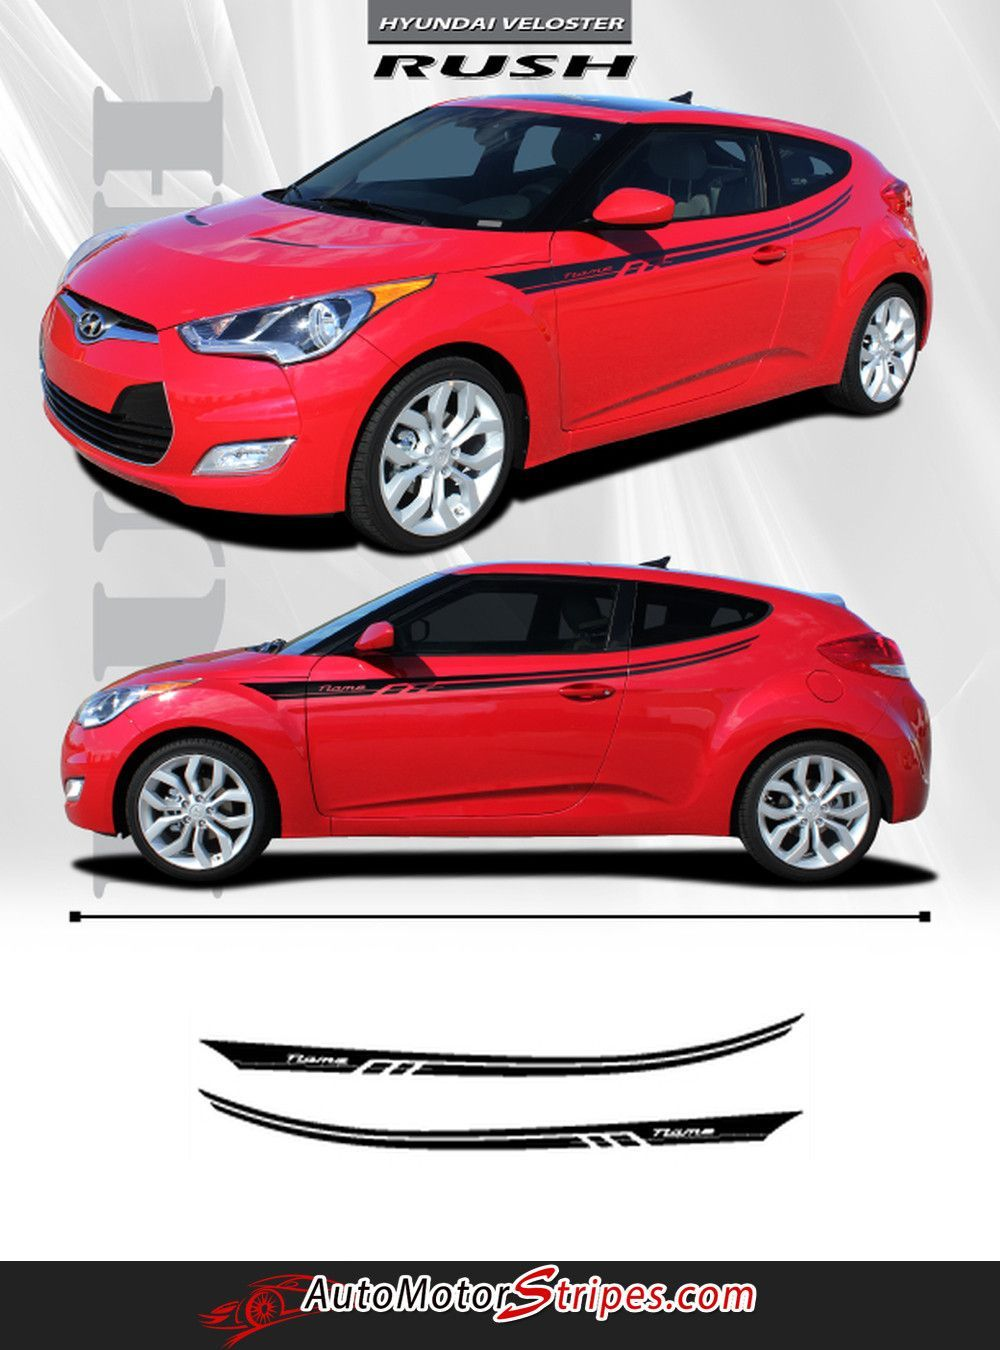 Vehicle Specific Style - Hyundai Veloster Rush Upper Body Accent Door Panel Vinyl Graphic Stripe Decals  sc 1 st  Pinterest & 2011-2017 Hyundai Veloster Rush Upper Body Accent Door Panel Vinyl ...